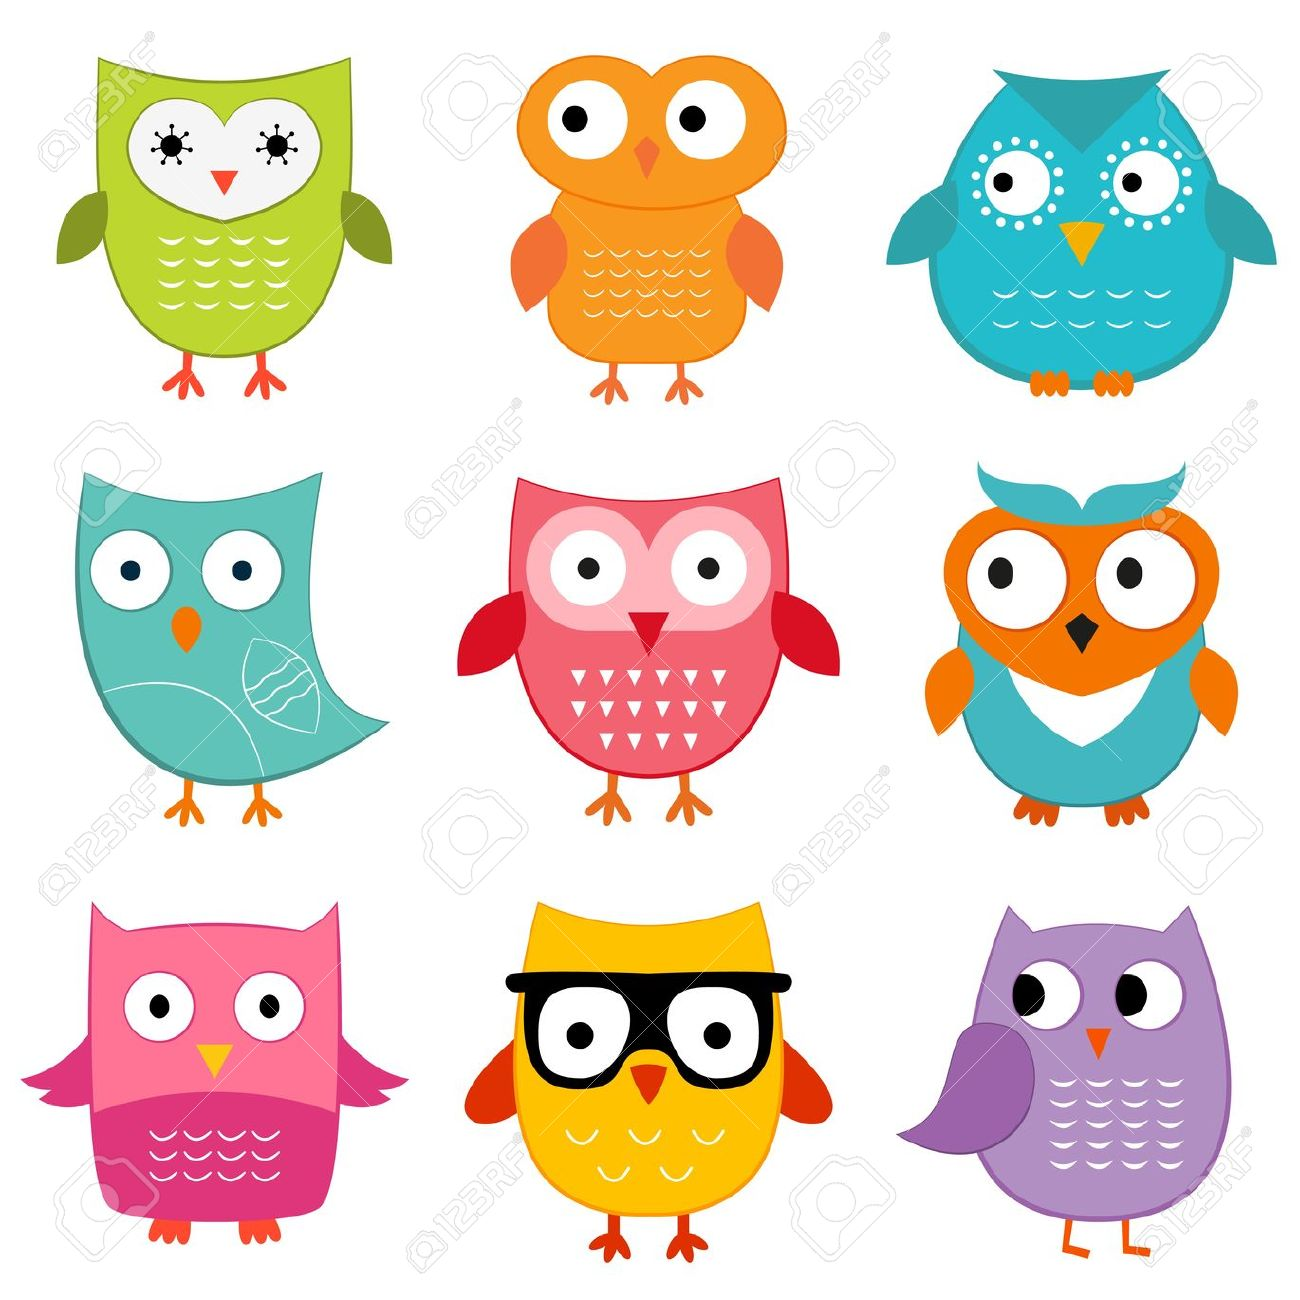 18,920 Cute Owl Stock Vector Illustration And Royalty Free Cute